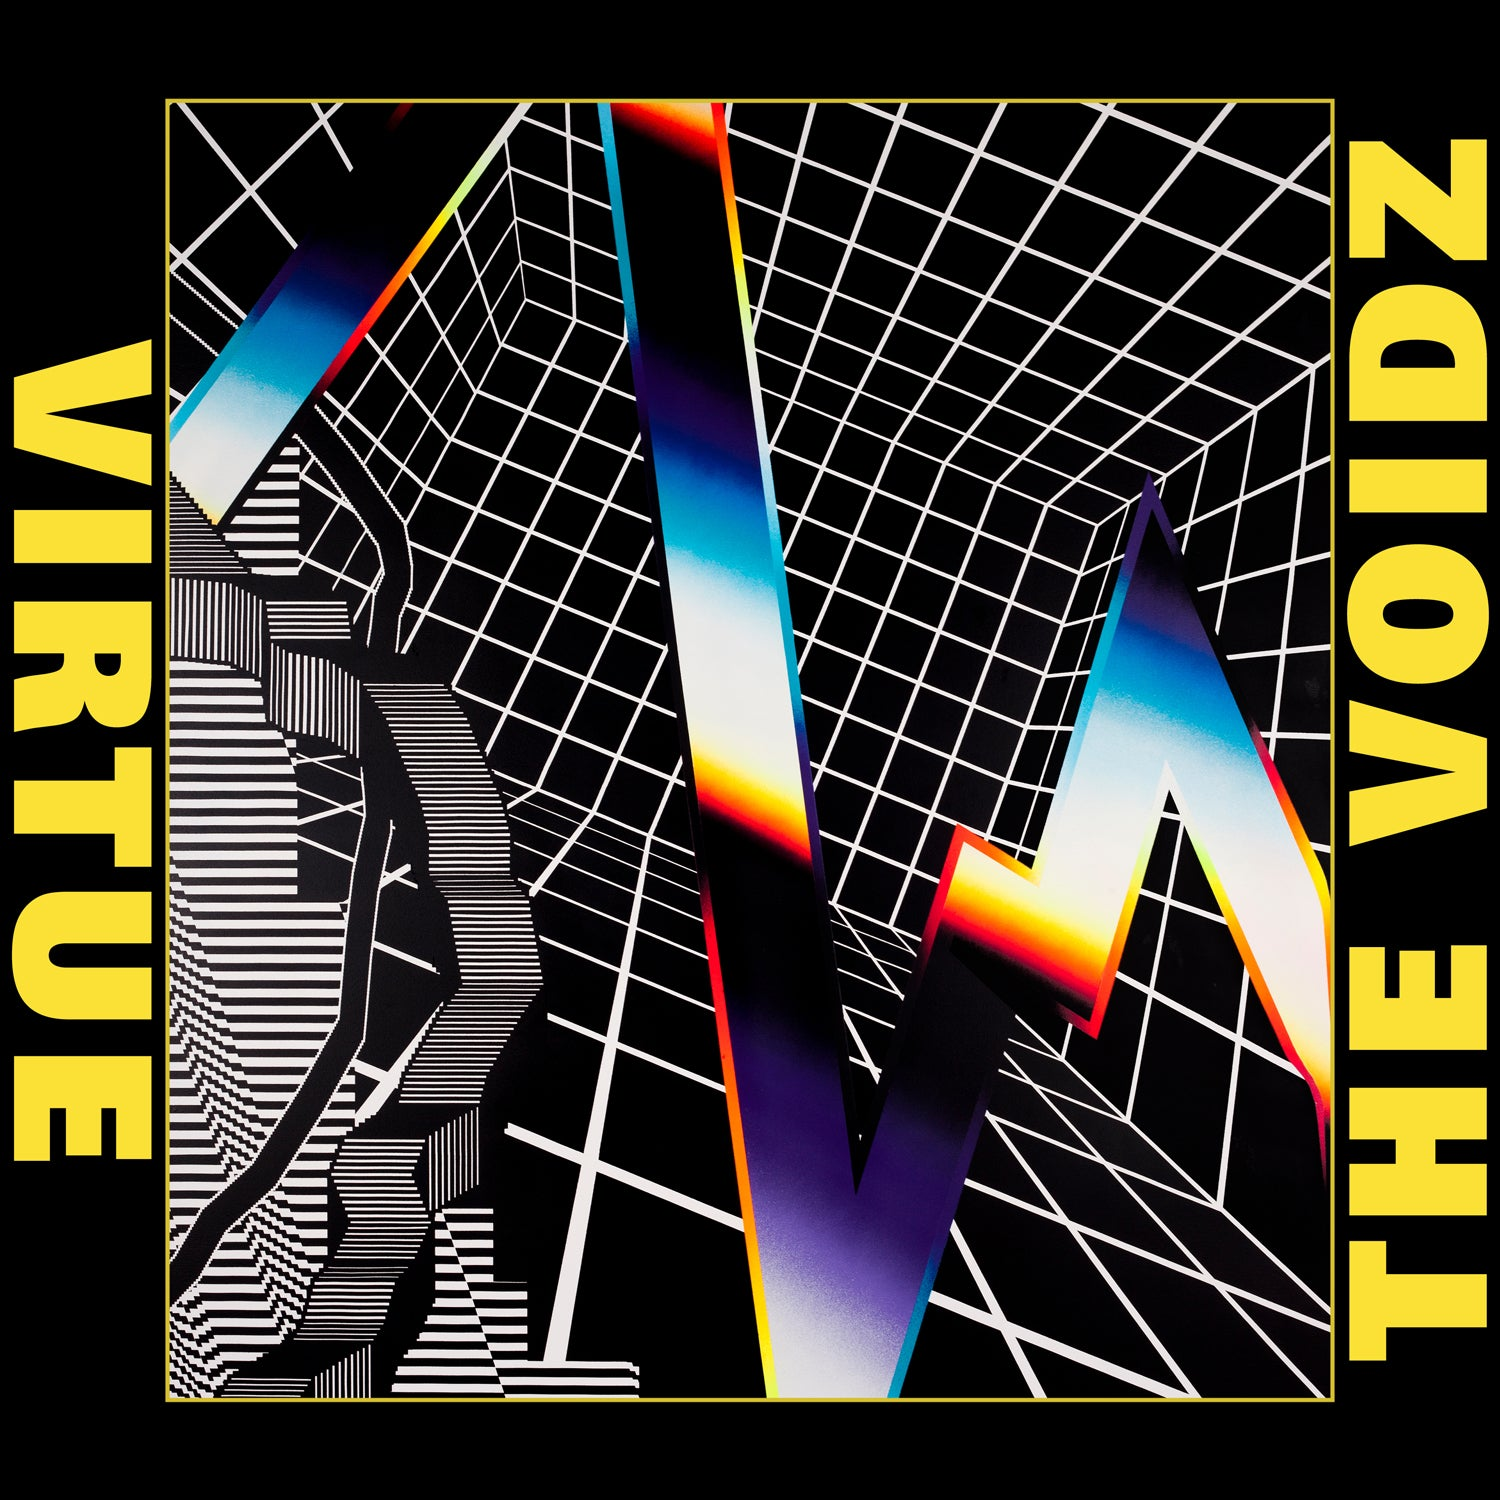 The Voidz 'QYURRYUS' Digital Download [Single]